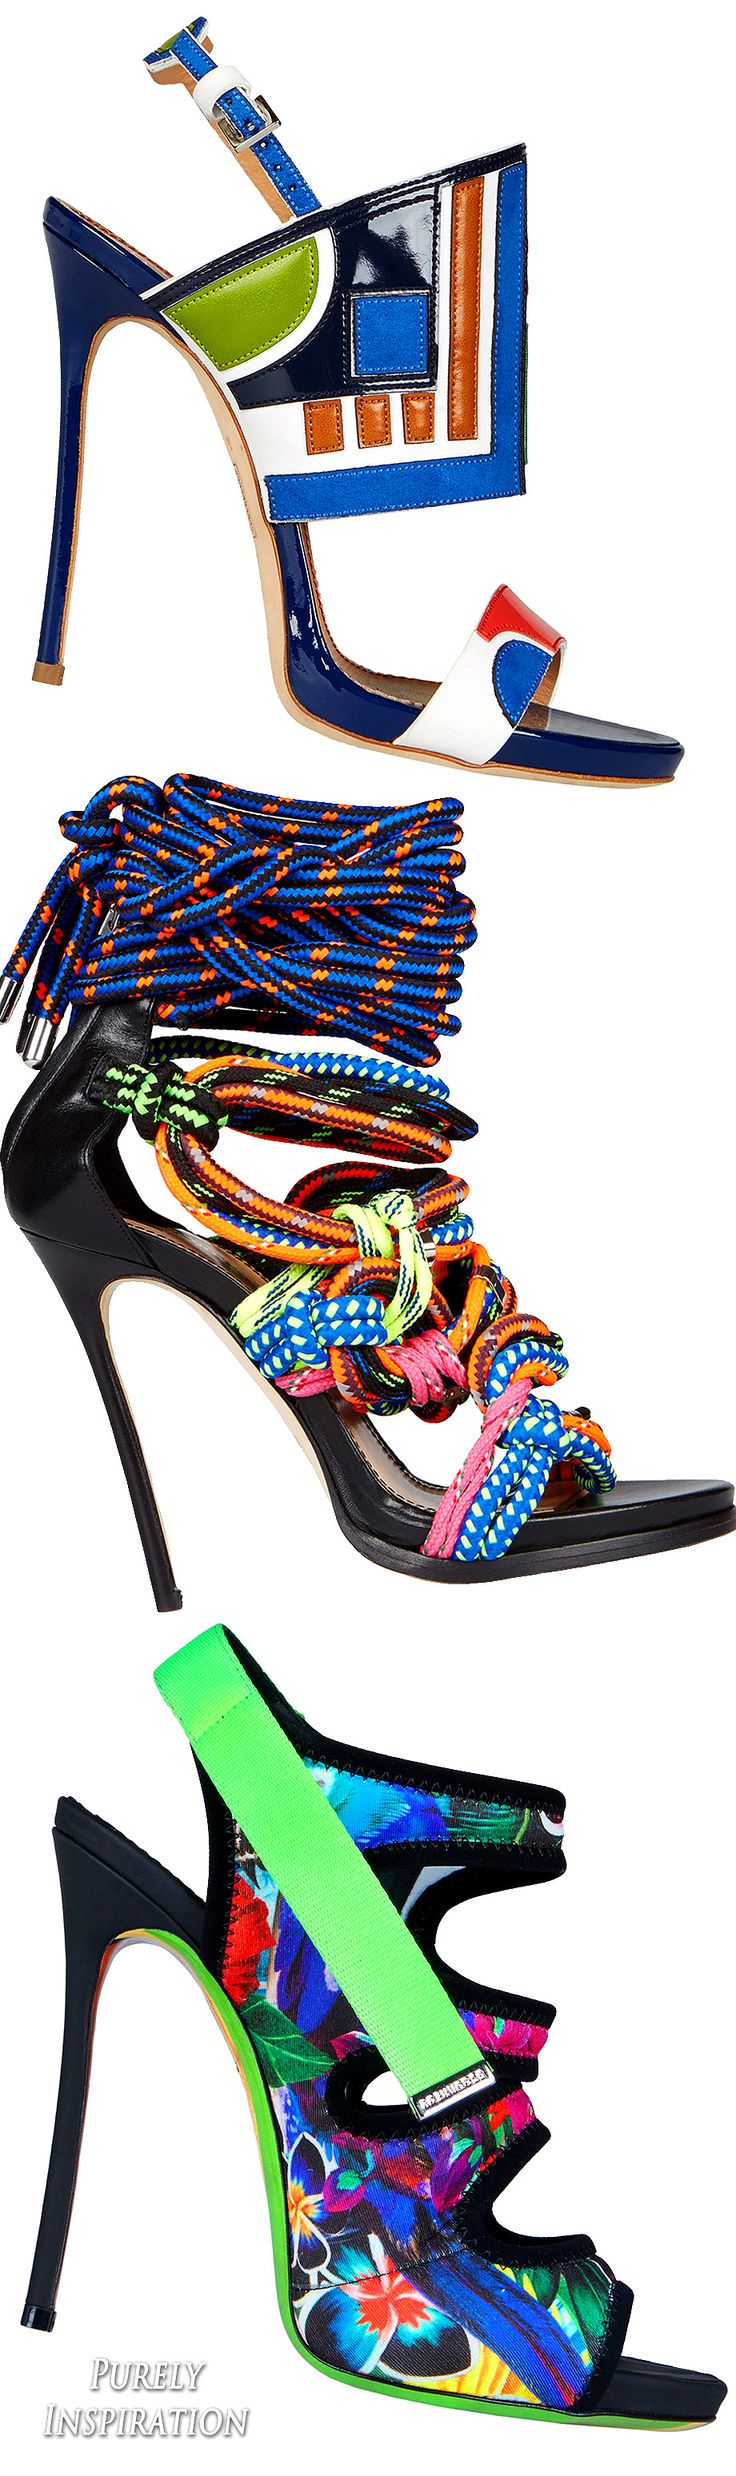 Dsquared2 Sandals   Purely Inspiration